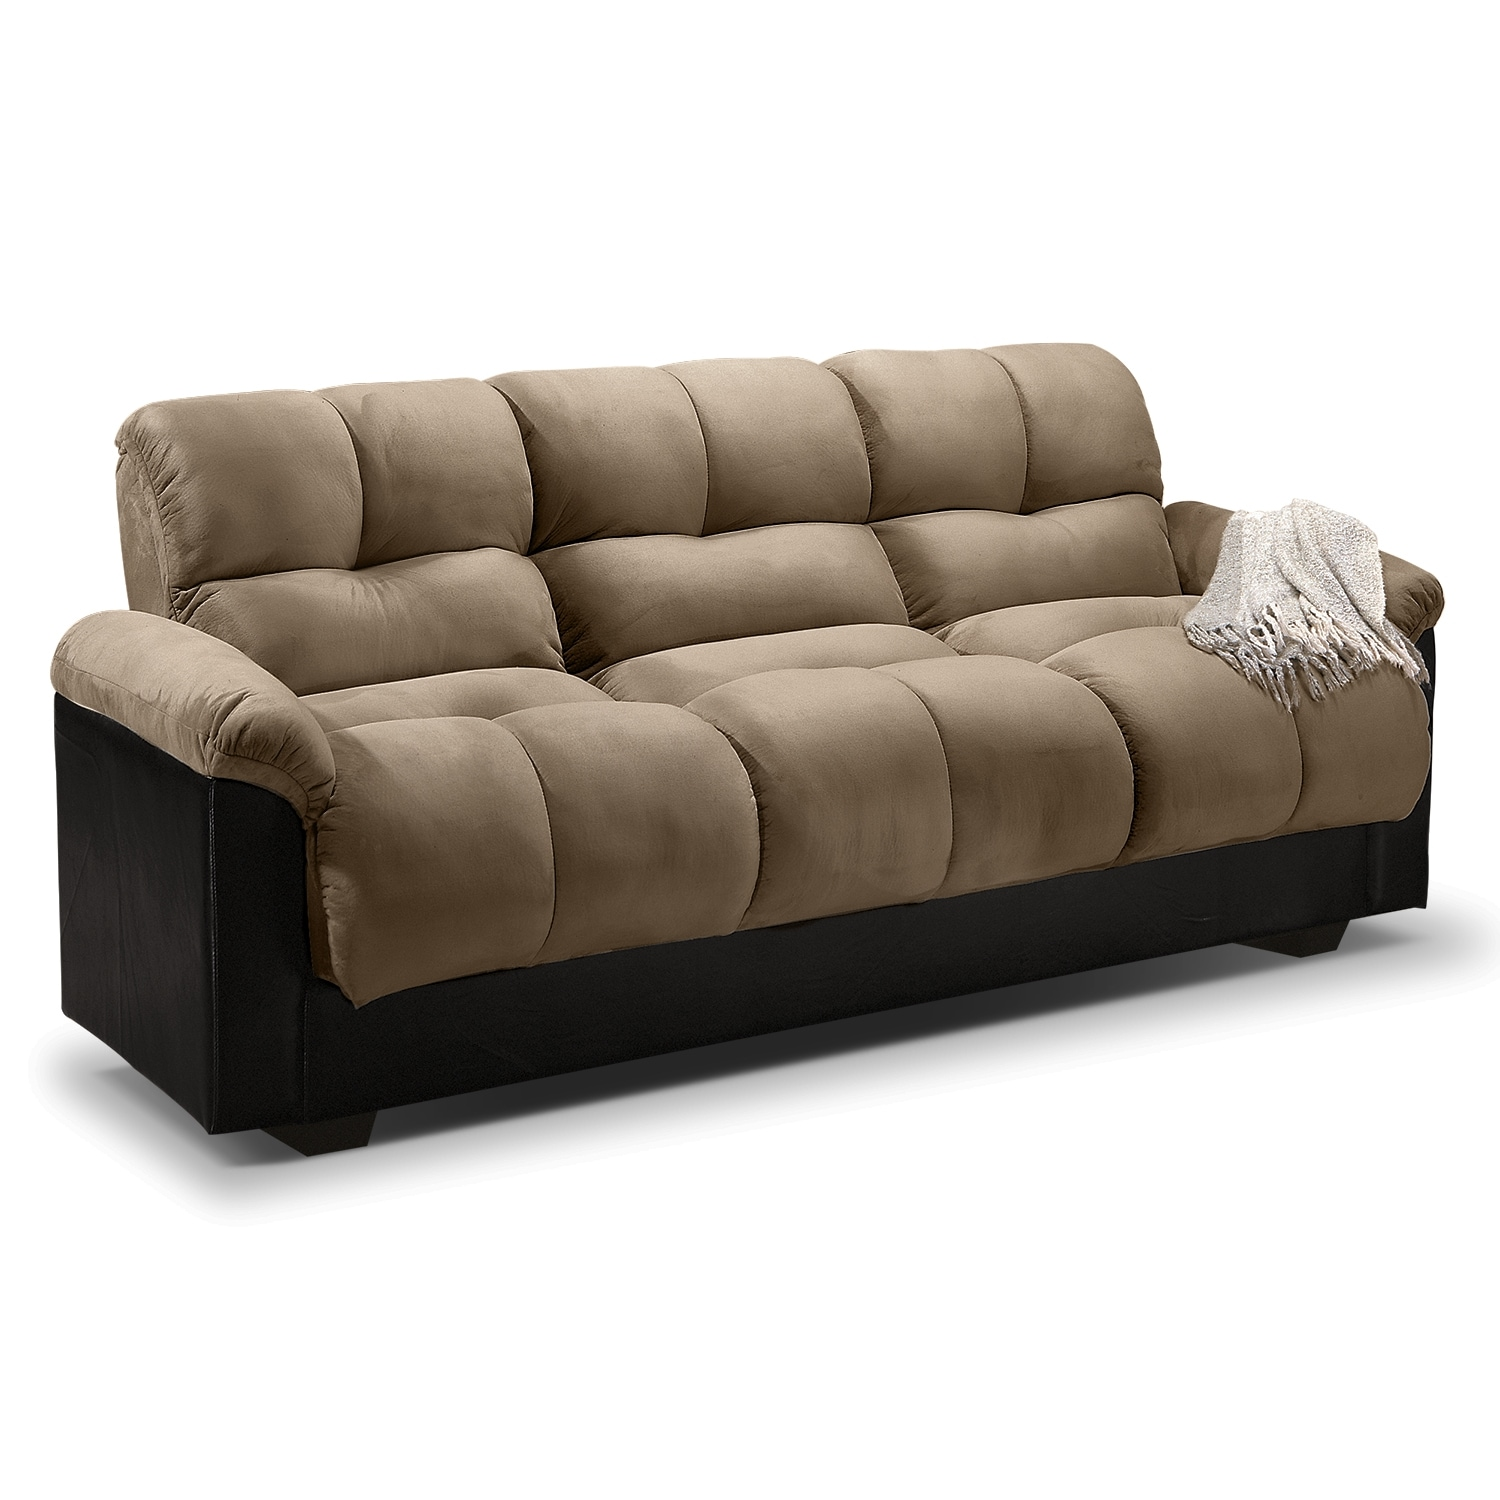 Ara Futon Sofa Bed With Storage - Hazelnut